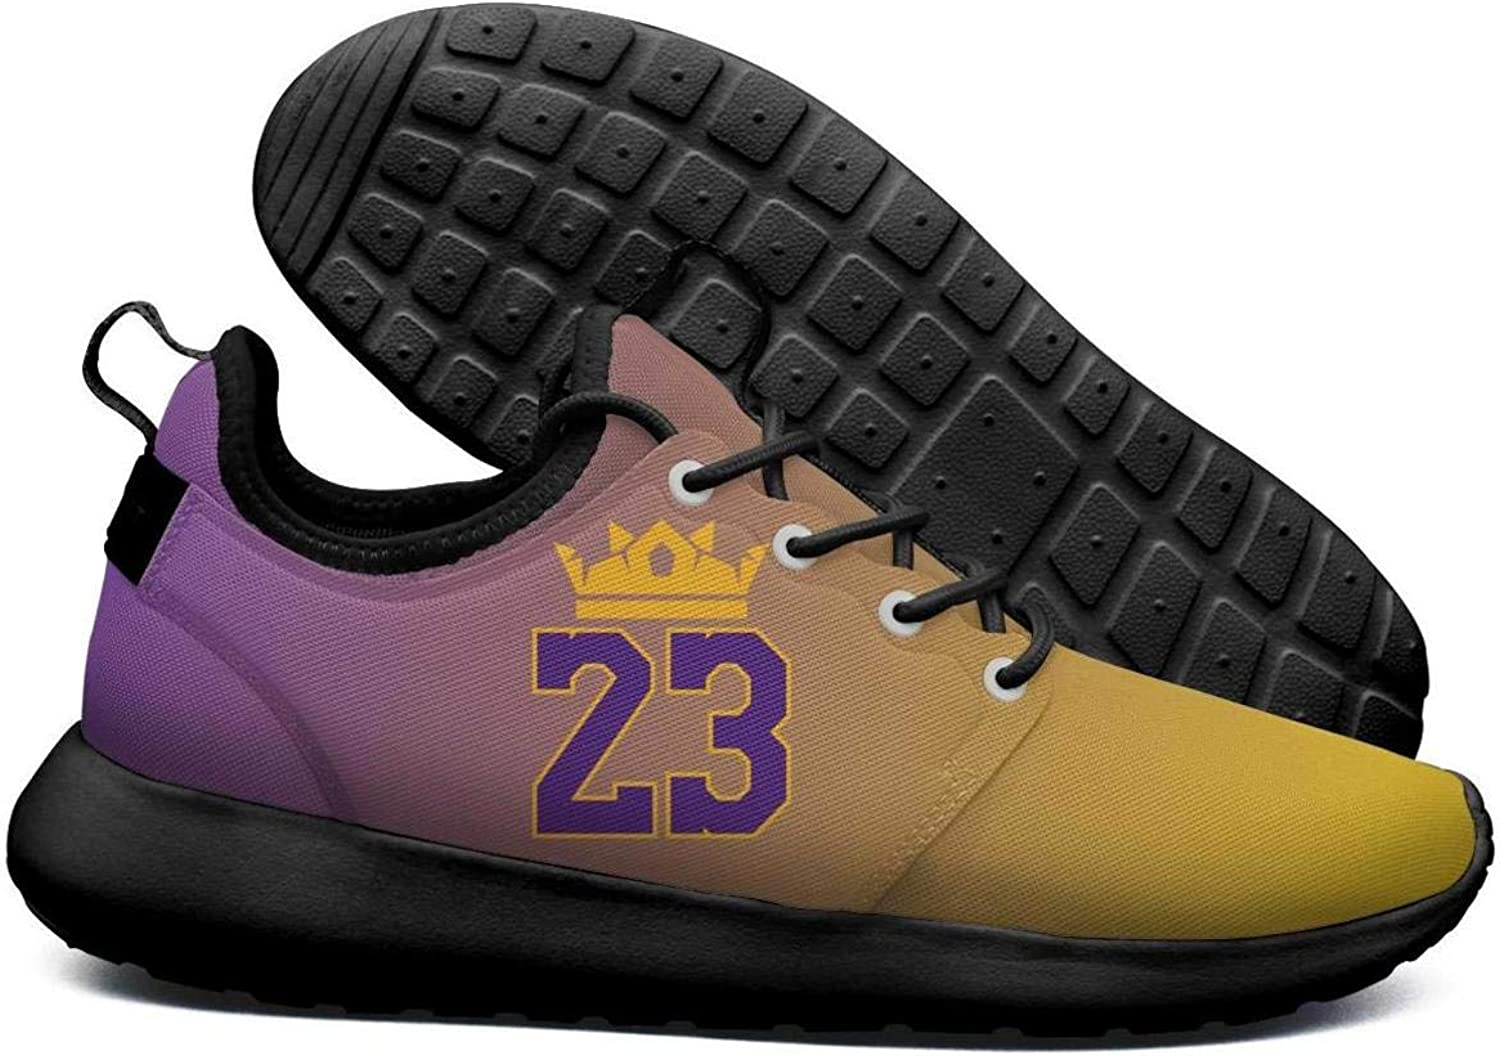 Womens Roshe Two Lightweight Purple_labron_23 Soft Cross-Country Running mesh shoes